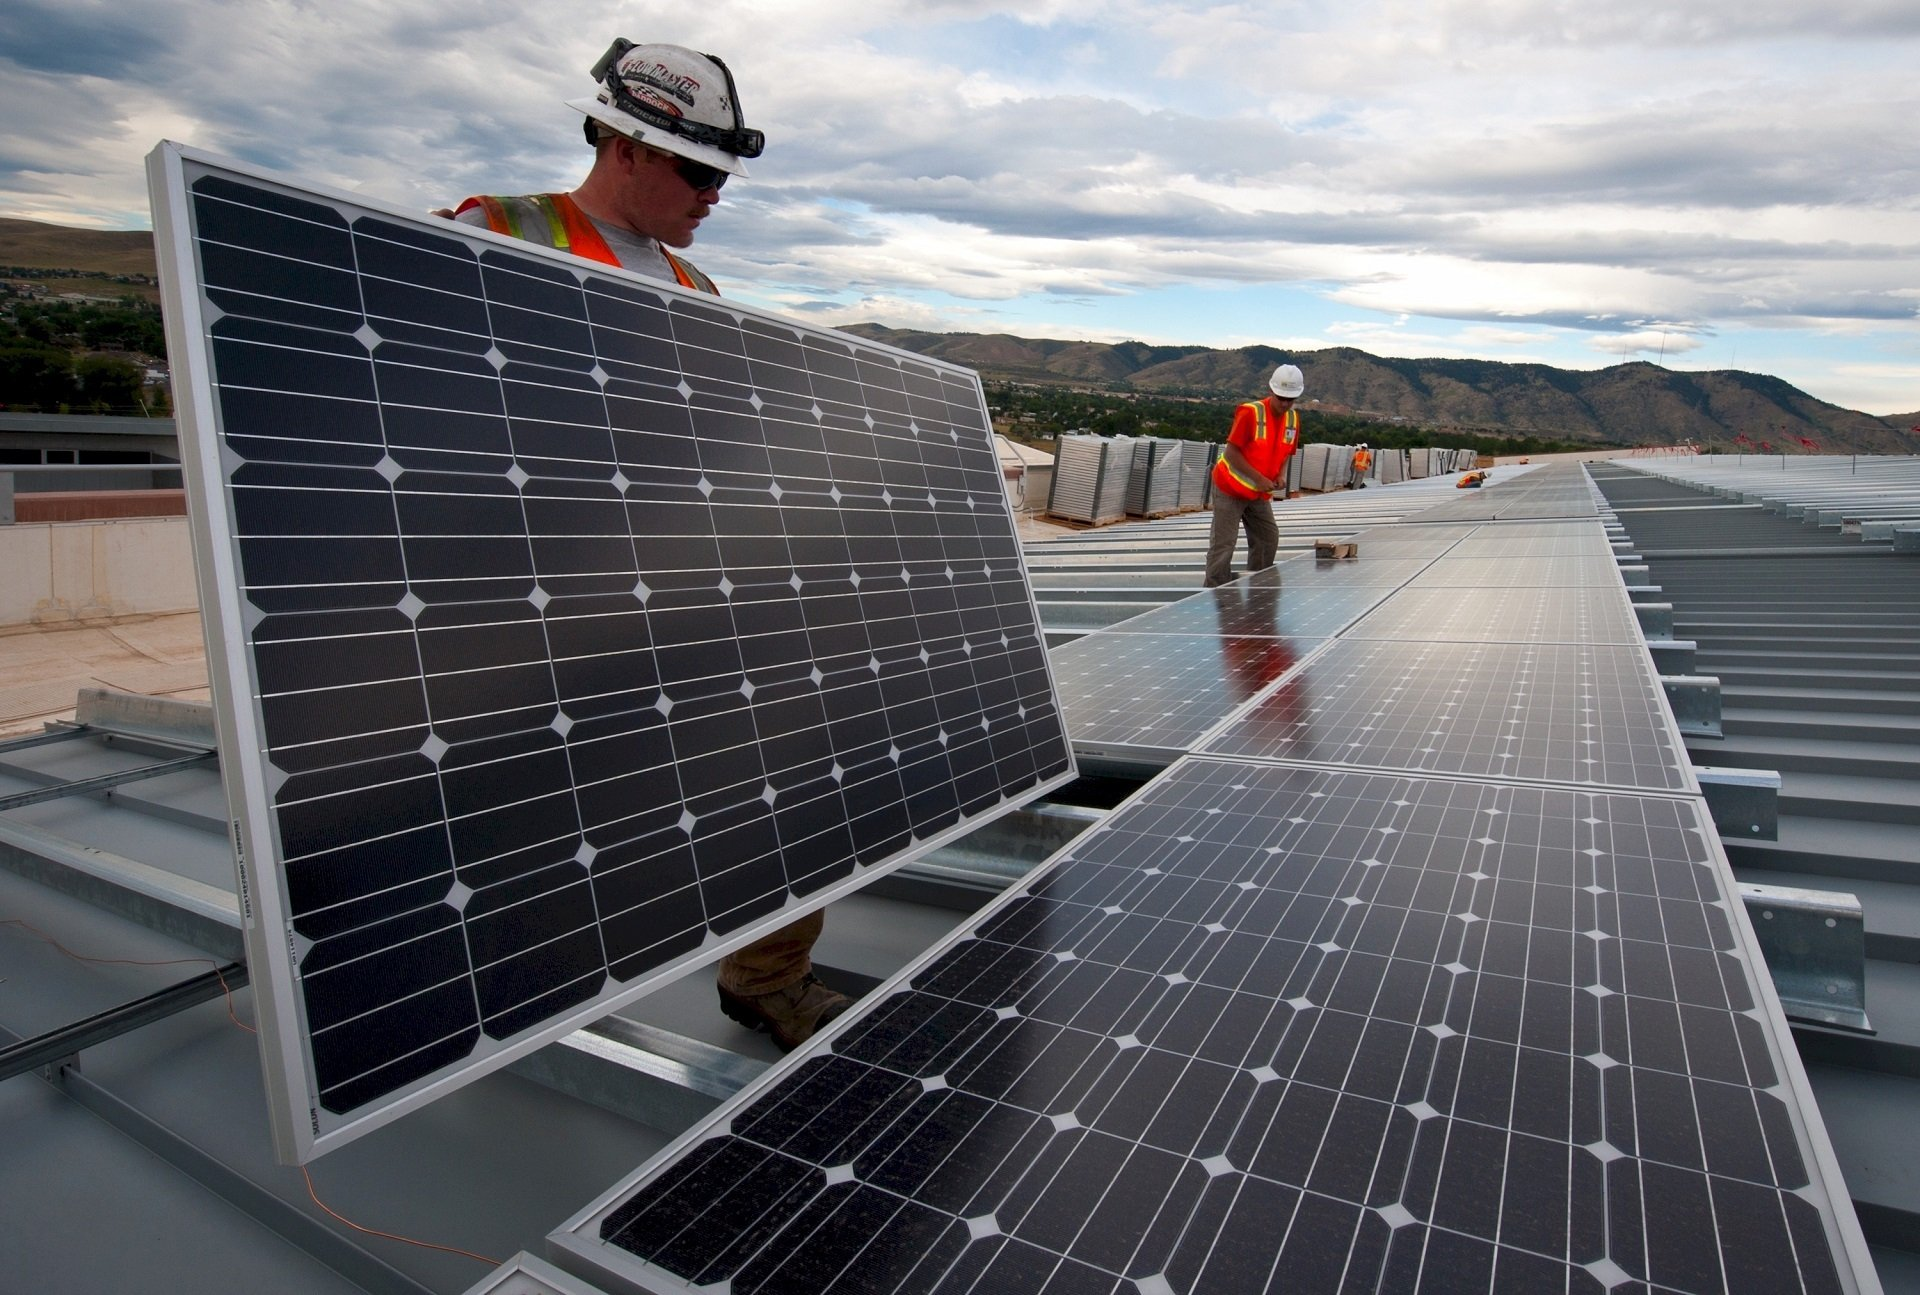 6 Huge Benefits of Solar Installs in Your Home in the Year 2020